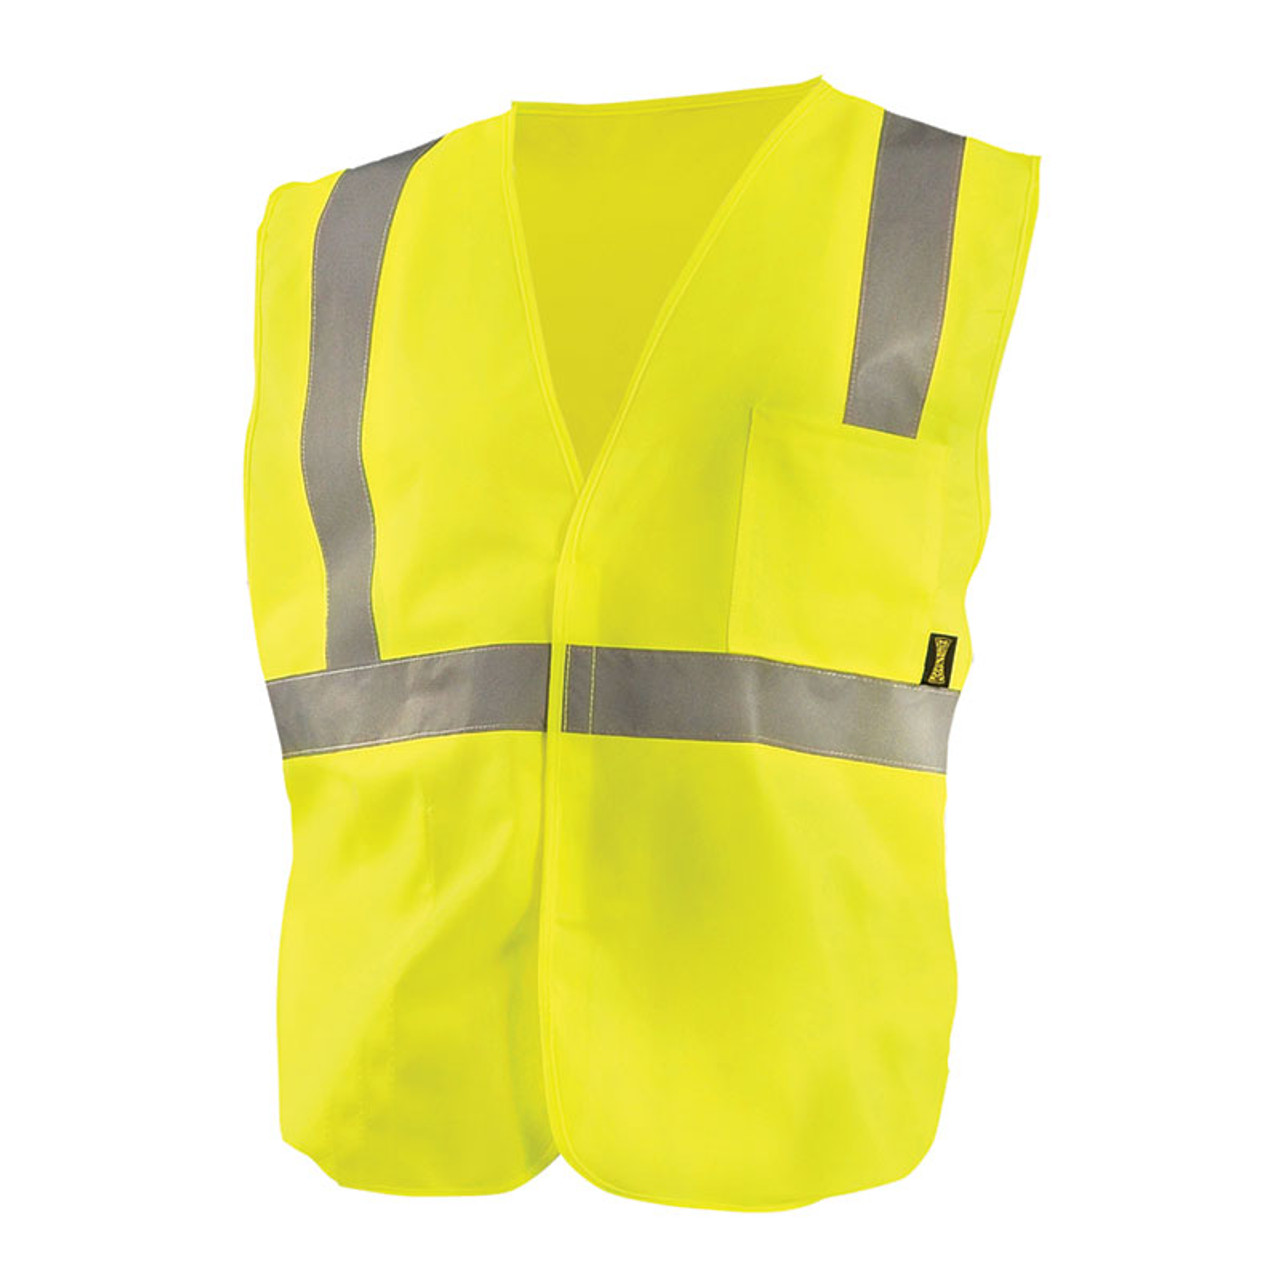 c4511b7ba7a Occunomix Class 2 Hi Vis Economy Safety Vest ECO-IS Yellow Front